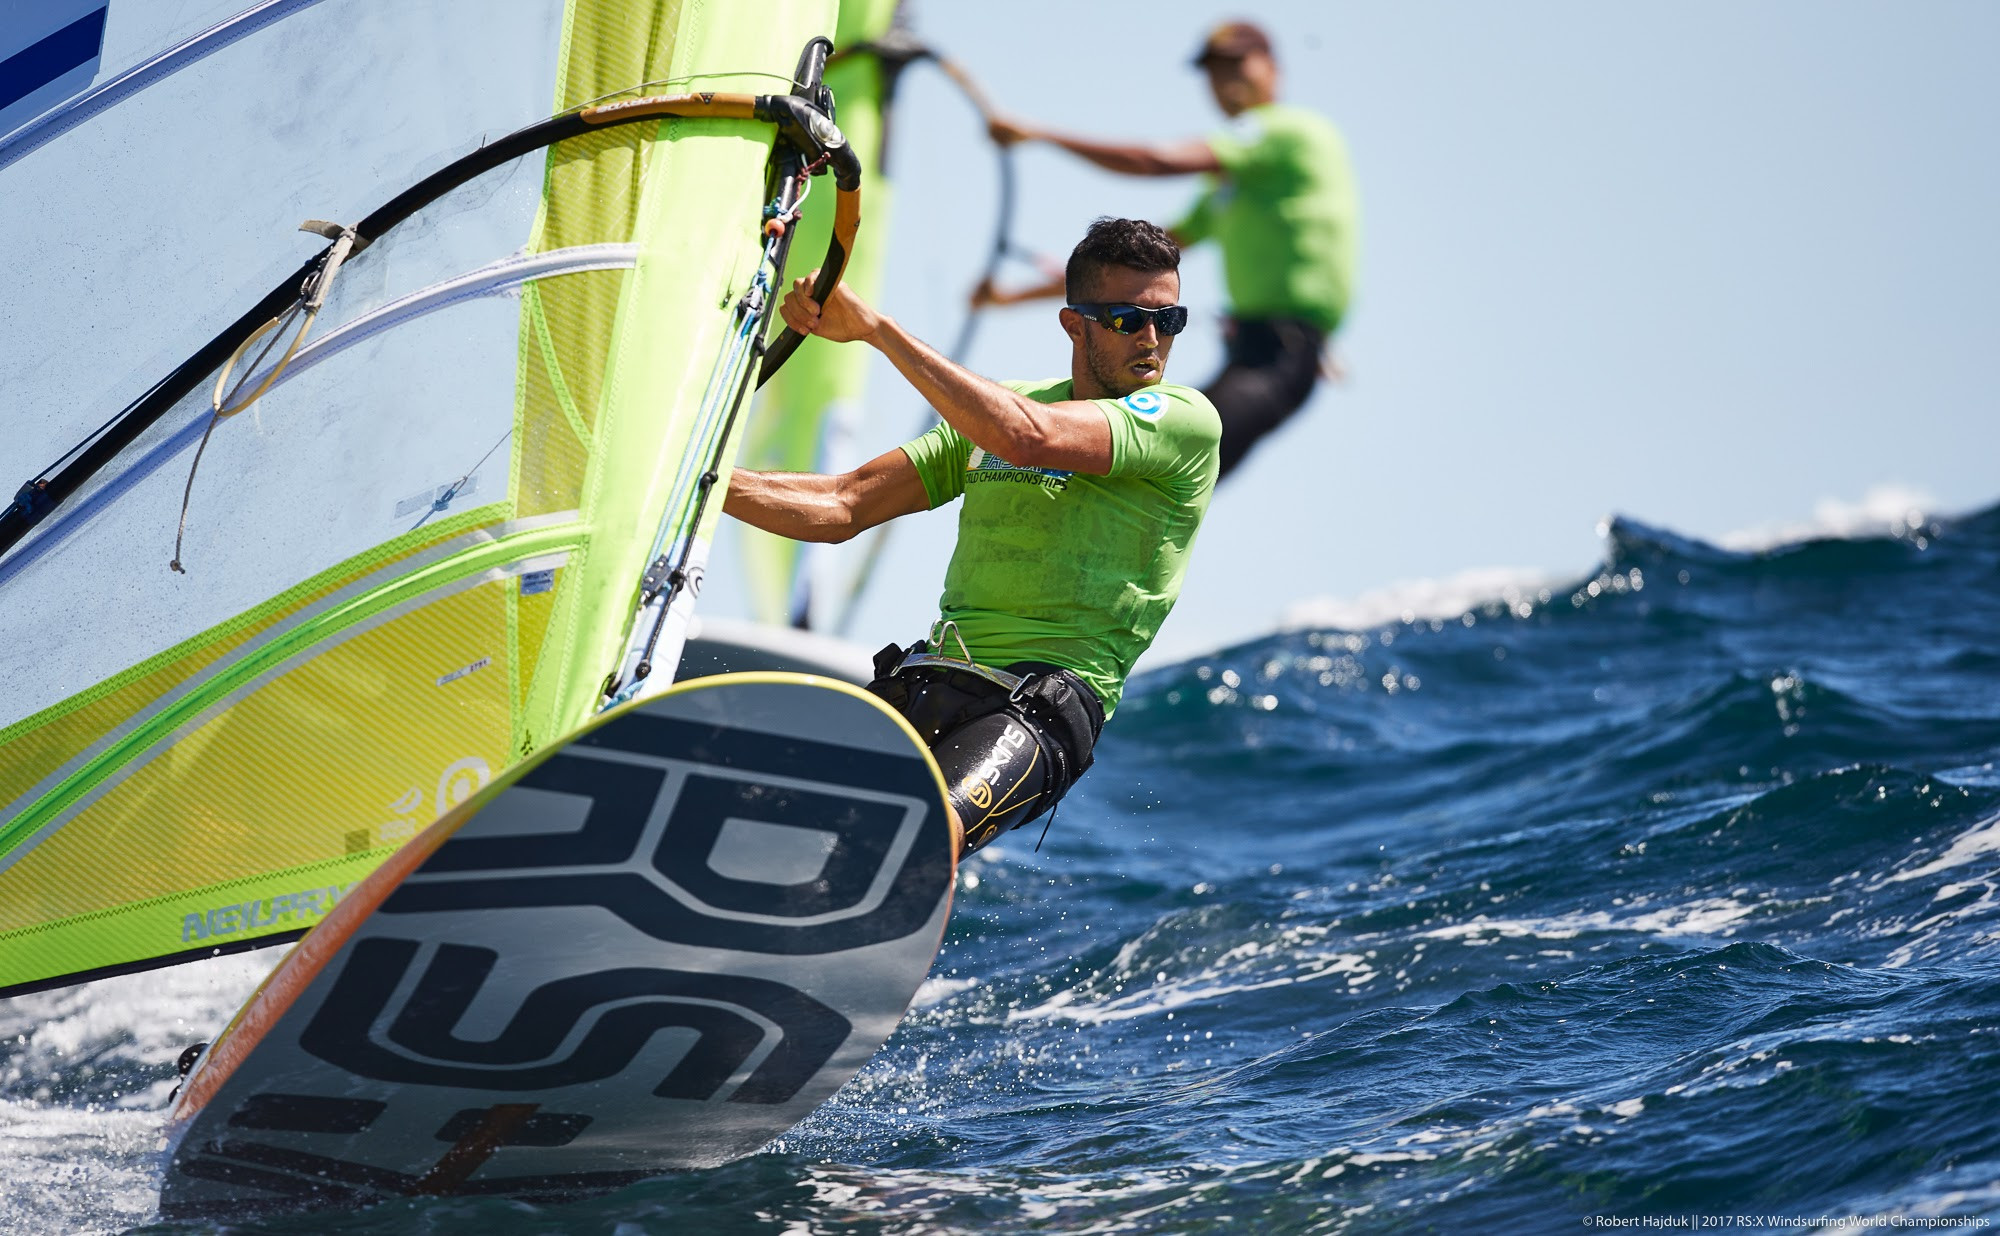 Frenchman keeps men's lead at RS:X Windsurfing World Championships